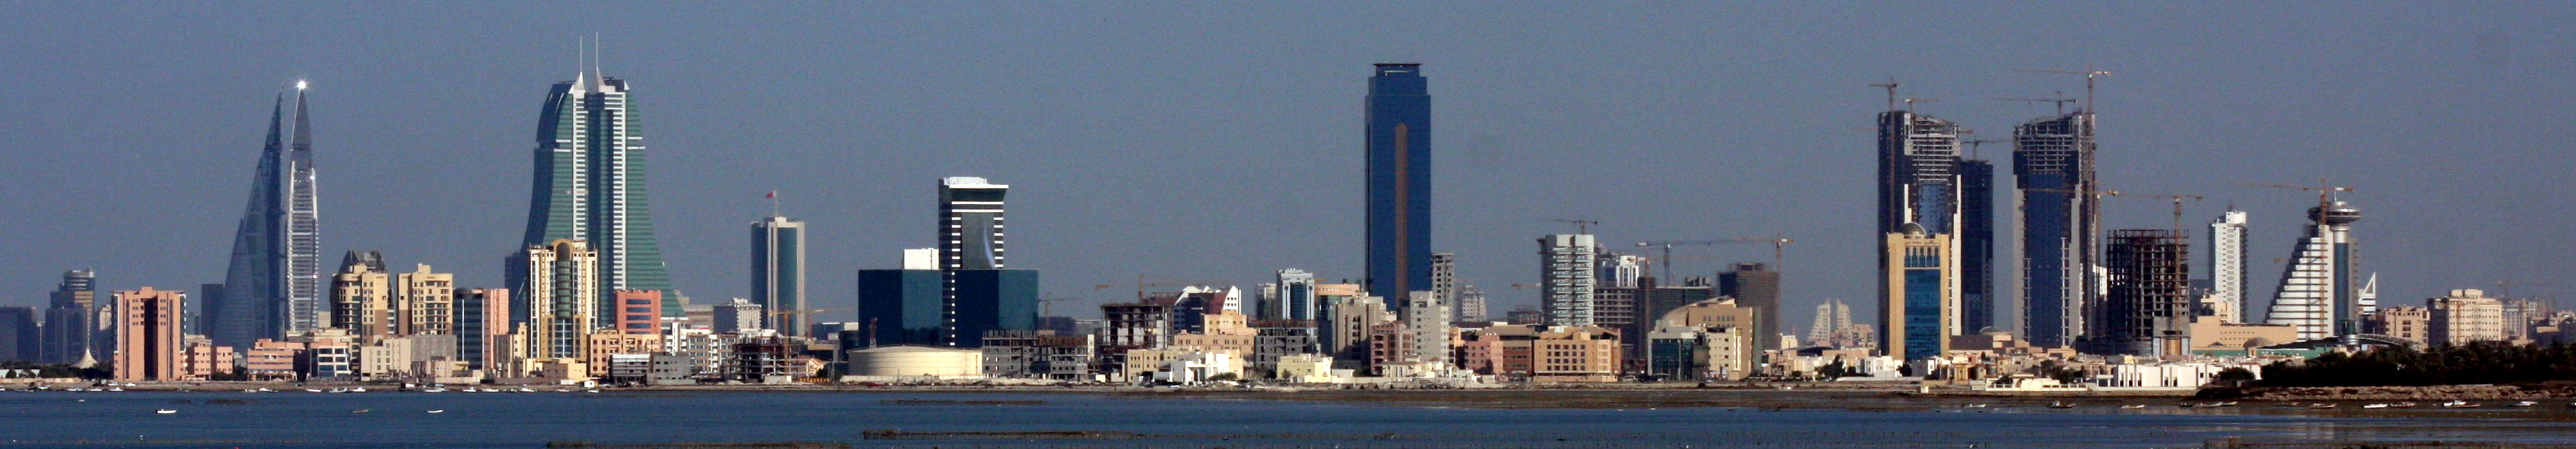 File:Manama Skyline.jpg - Wikimedia Commons